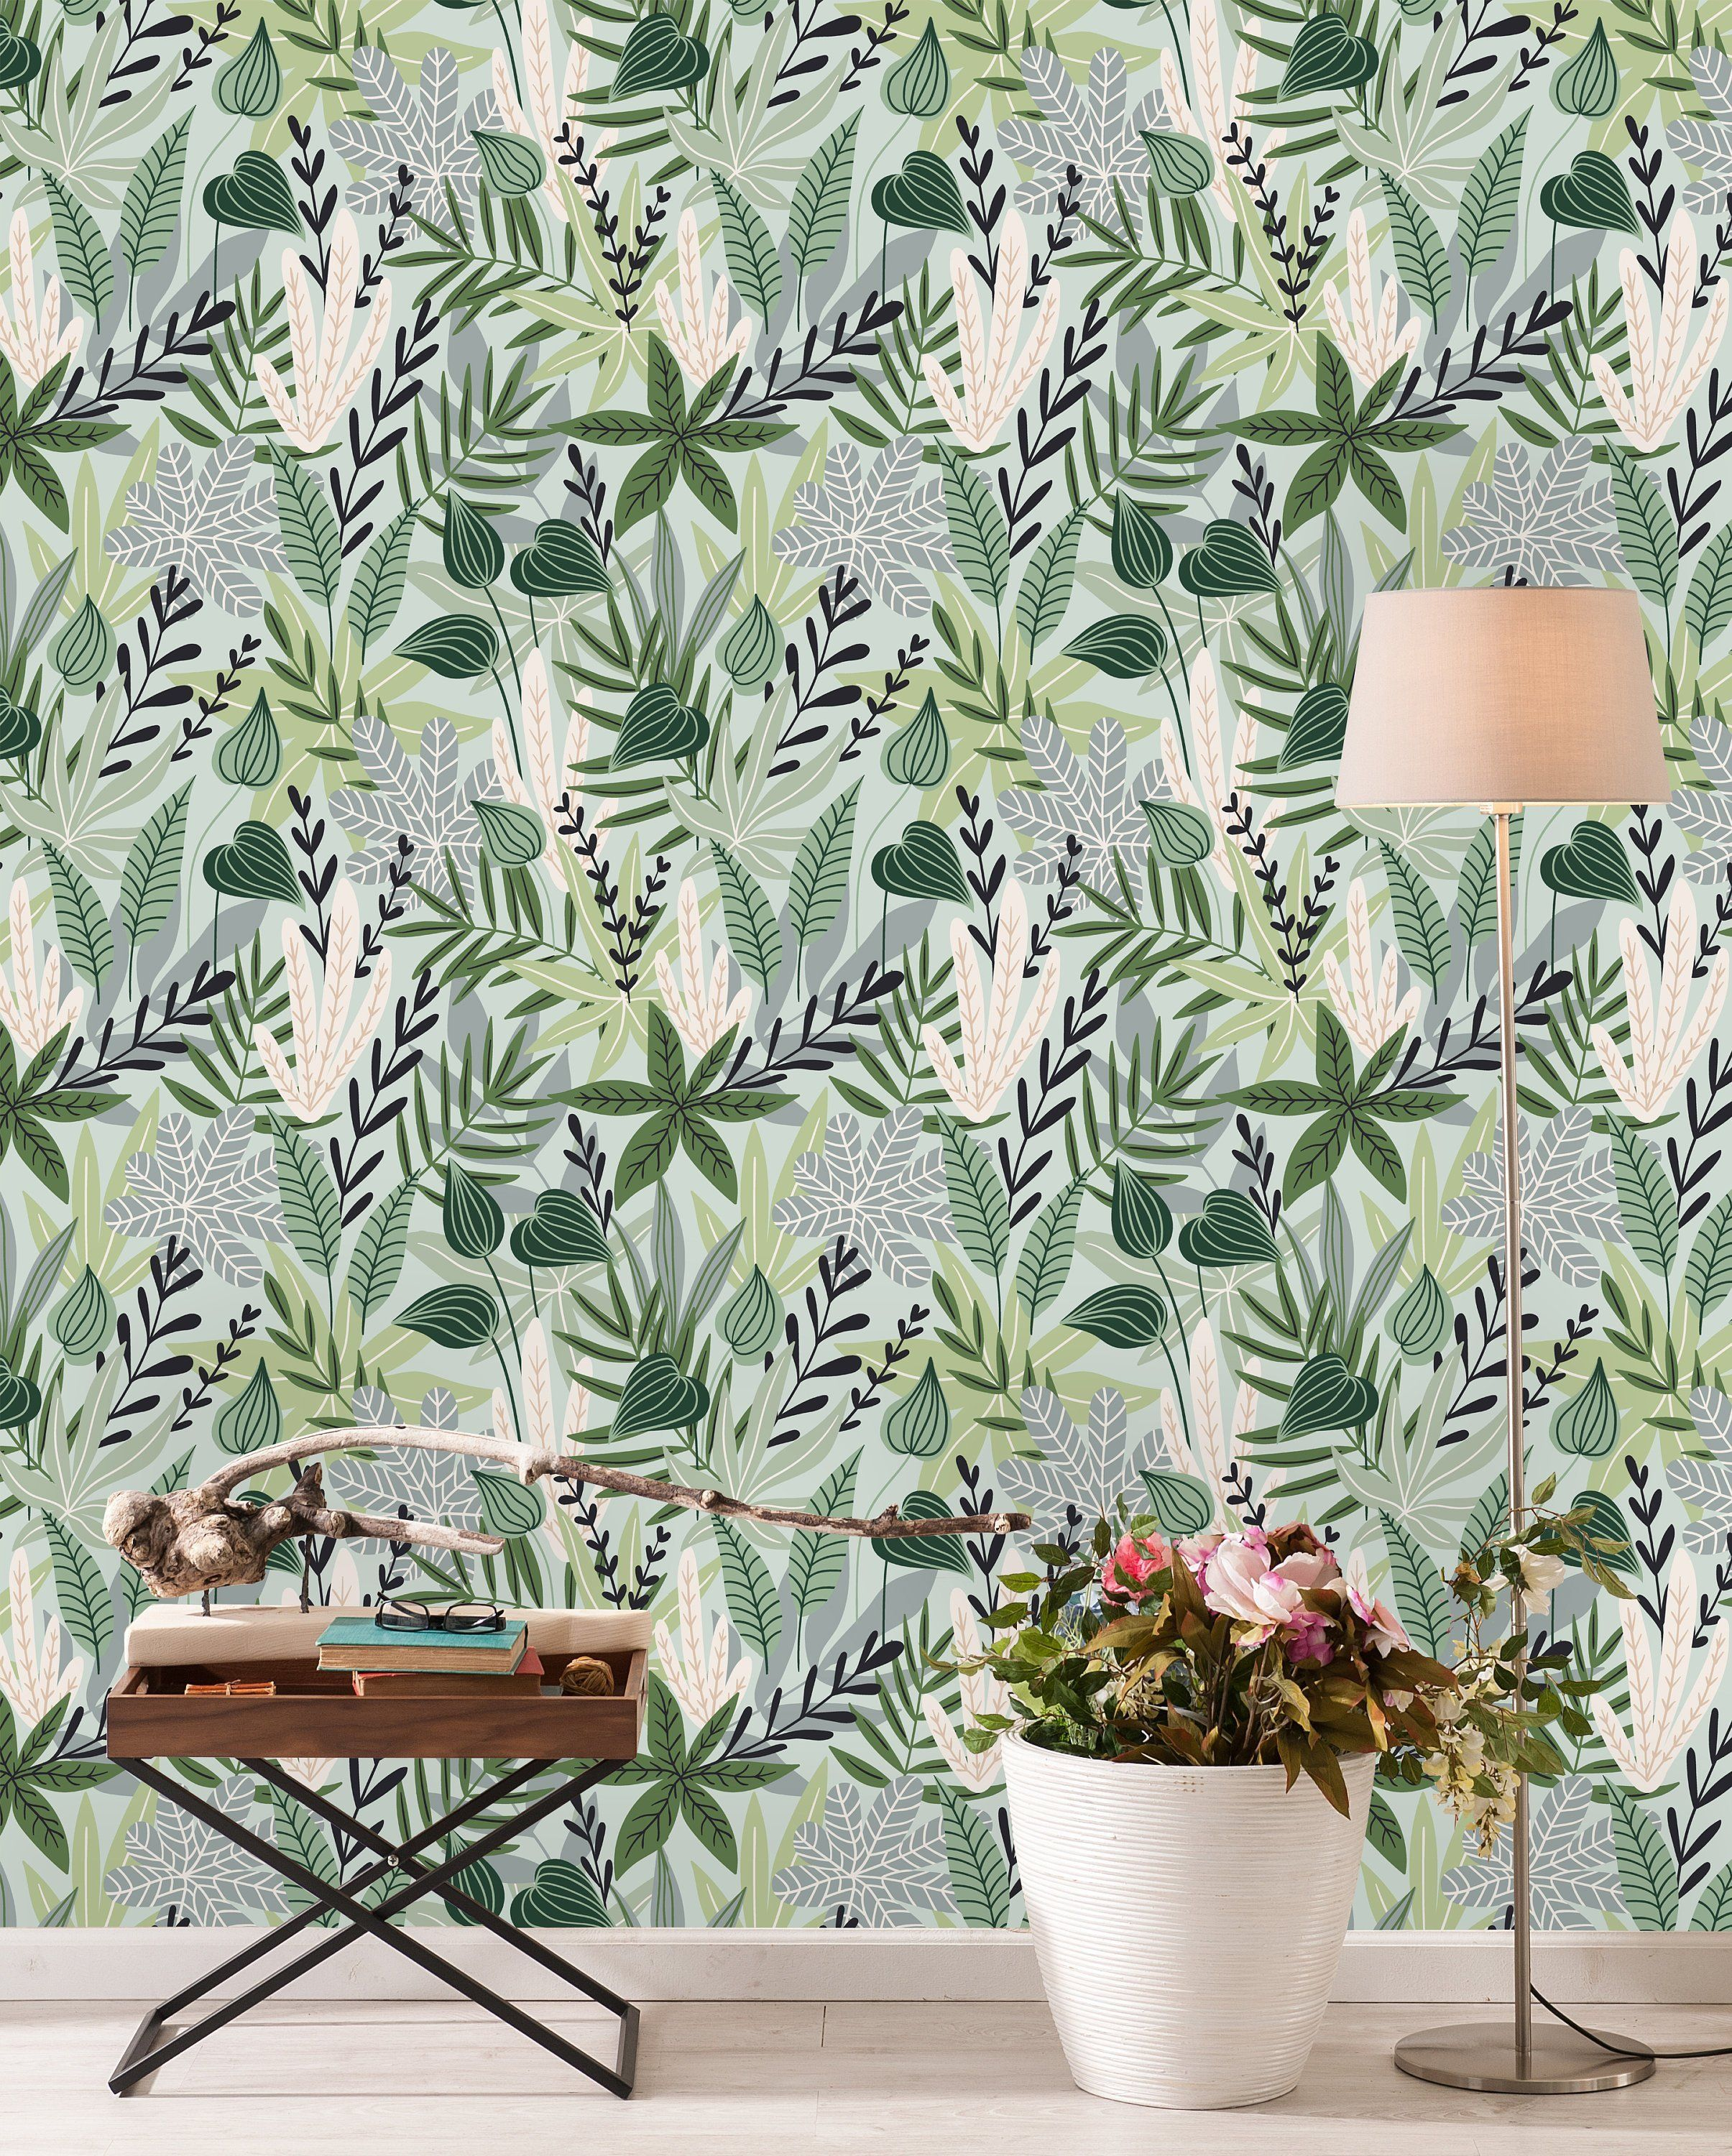 Botanical Pattern Removable Wallpaper Peel And Stick Etsy